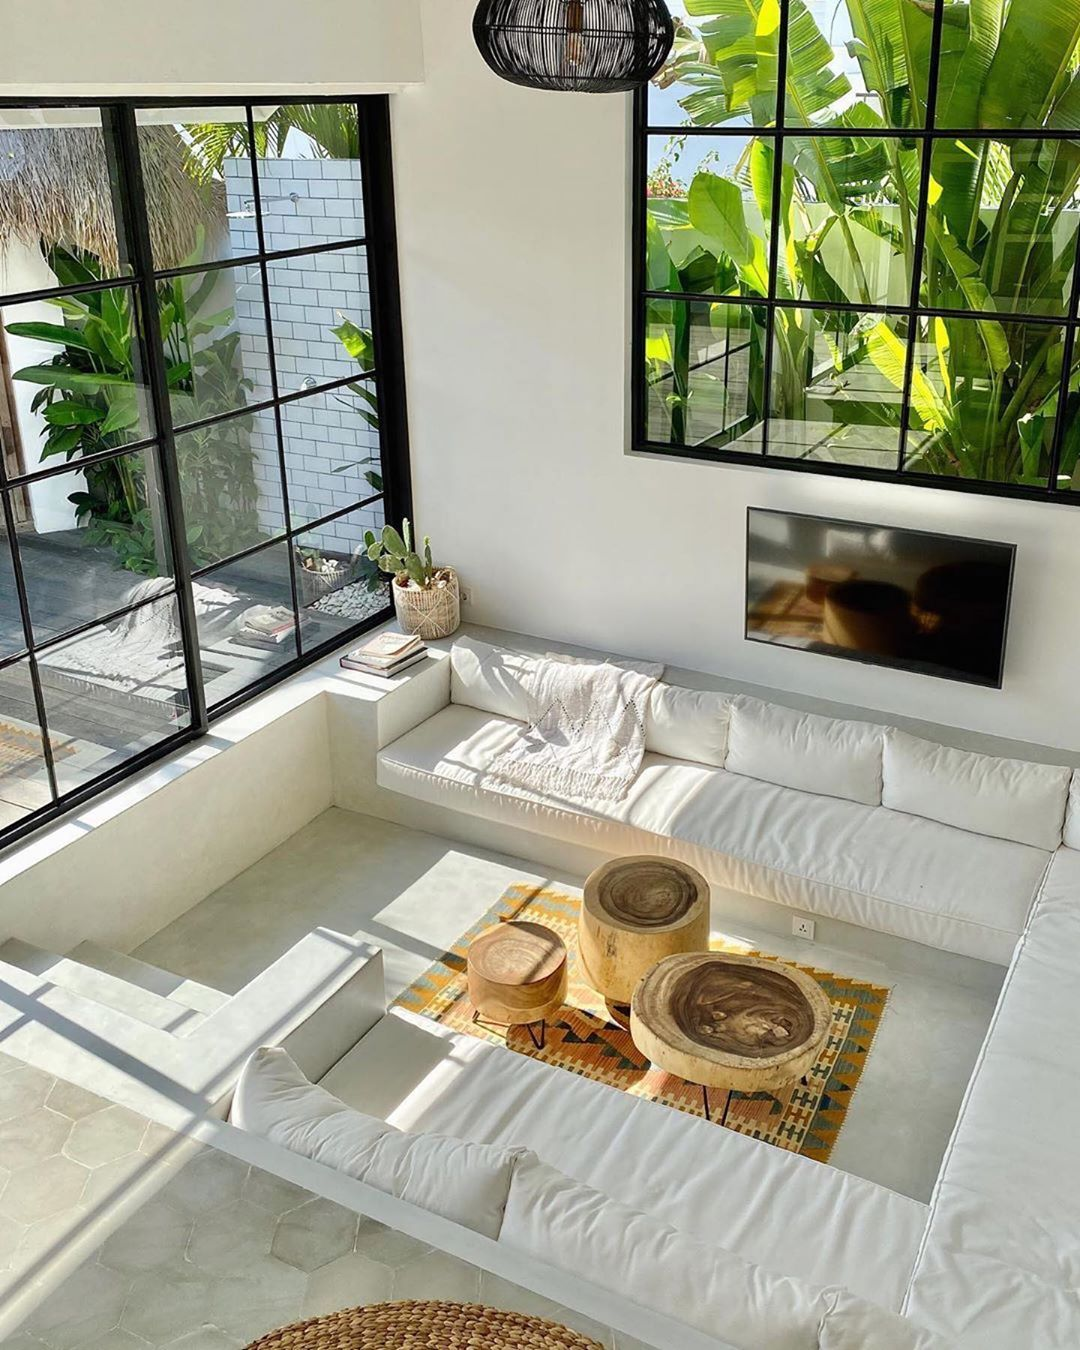 Home Decor Inspiration On Instagram Via My Homely Decor Welcome To The Beautiful Theyoungvillas In Canggu Bali Ta In 2020 Home Home Interior Design House